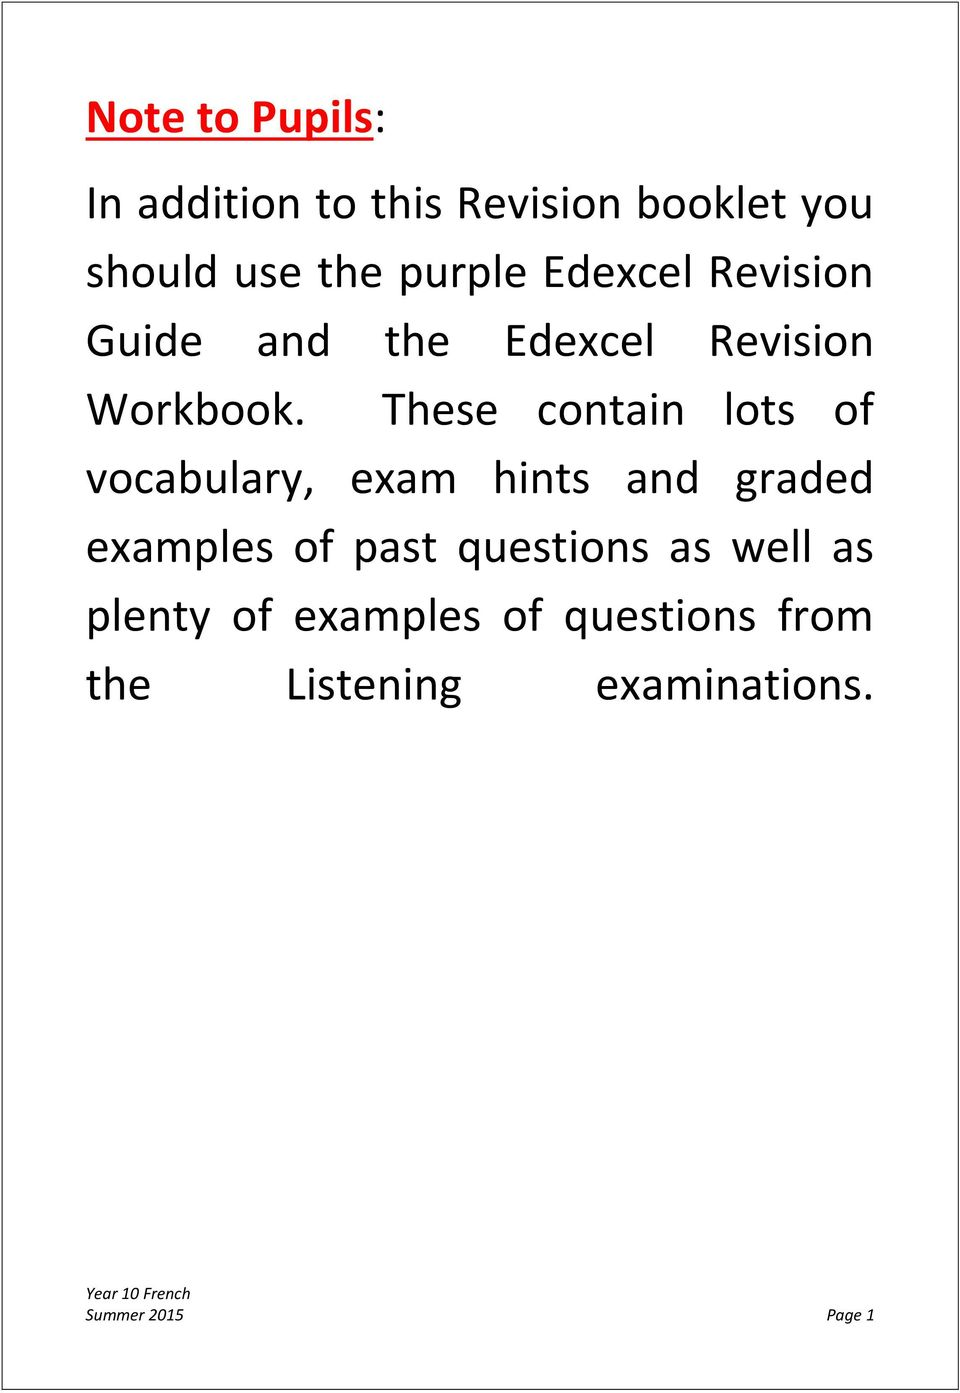 These contain lots of vocabulary, exam hints and graded examples of past questions